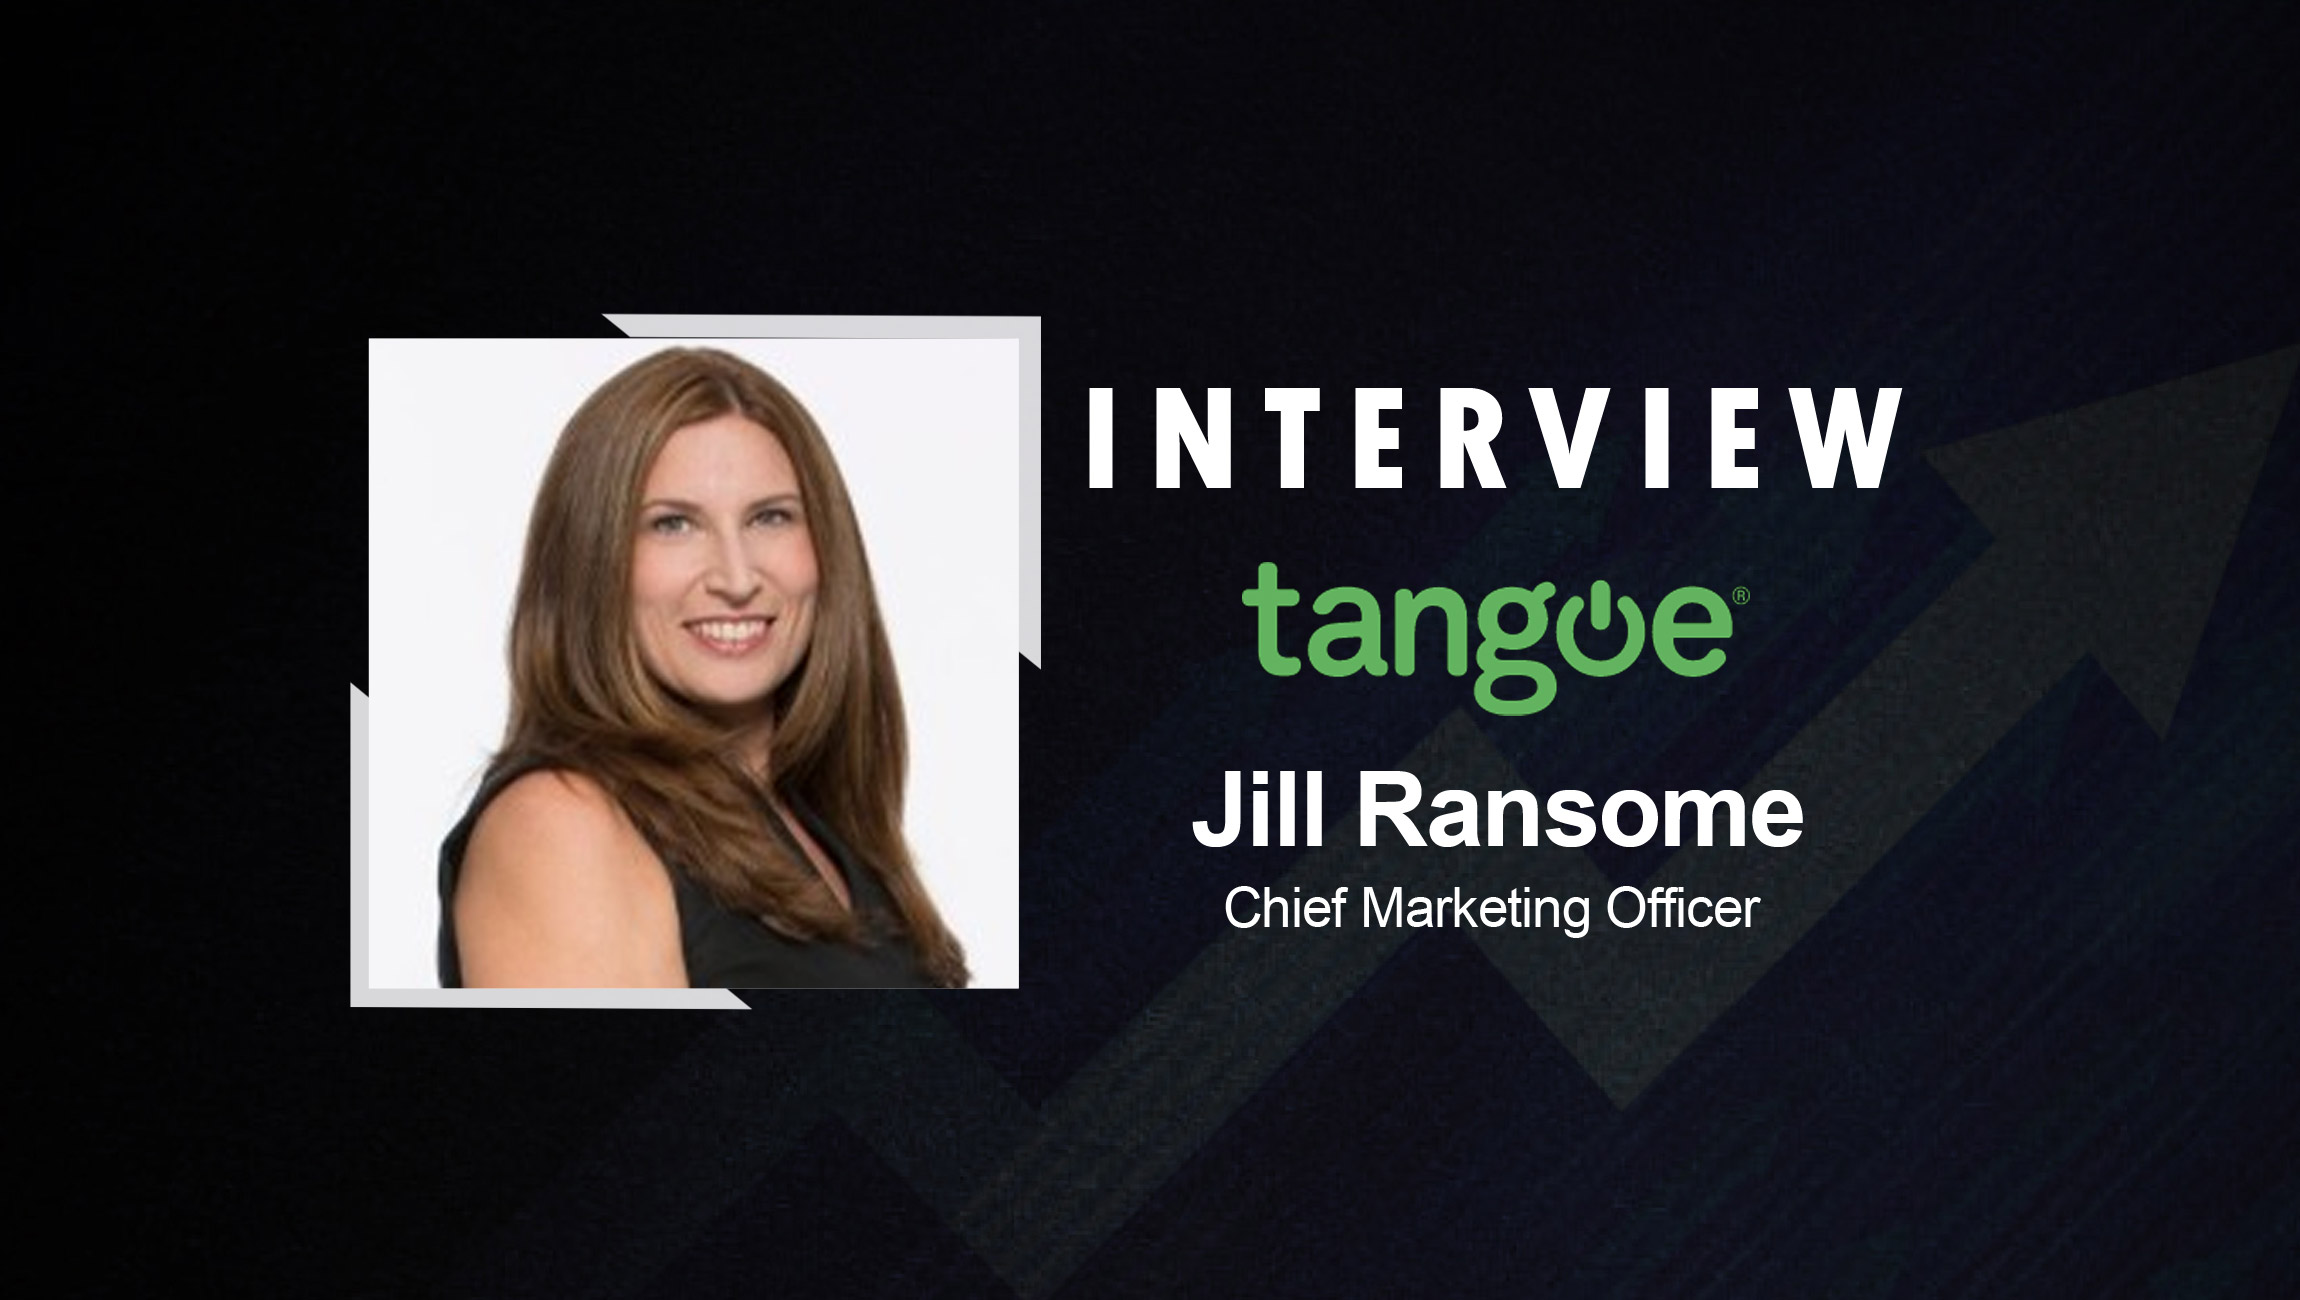 SalesTechStar Interview with Jill Ransome, Chief Marketing Officer at Tangoe